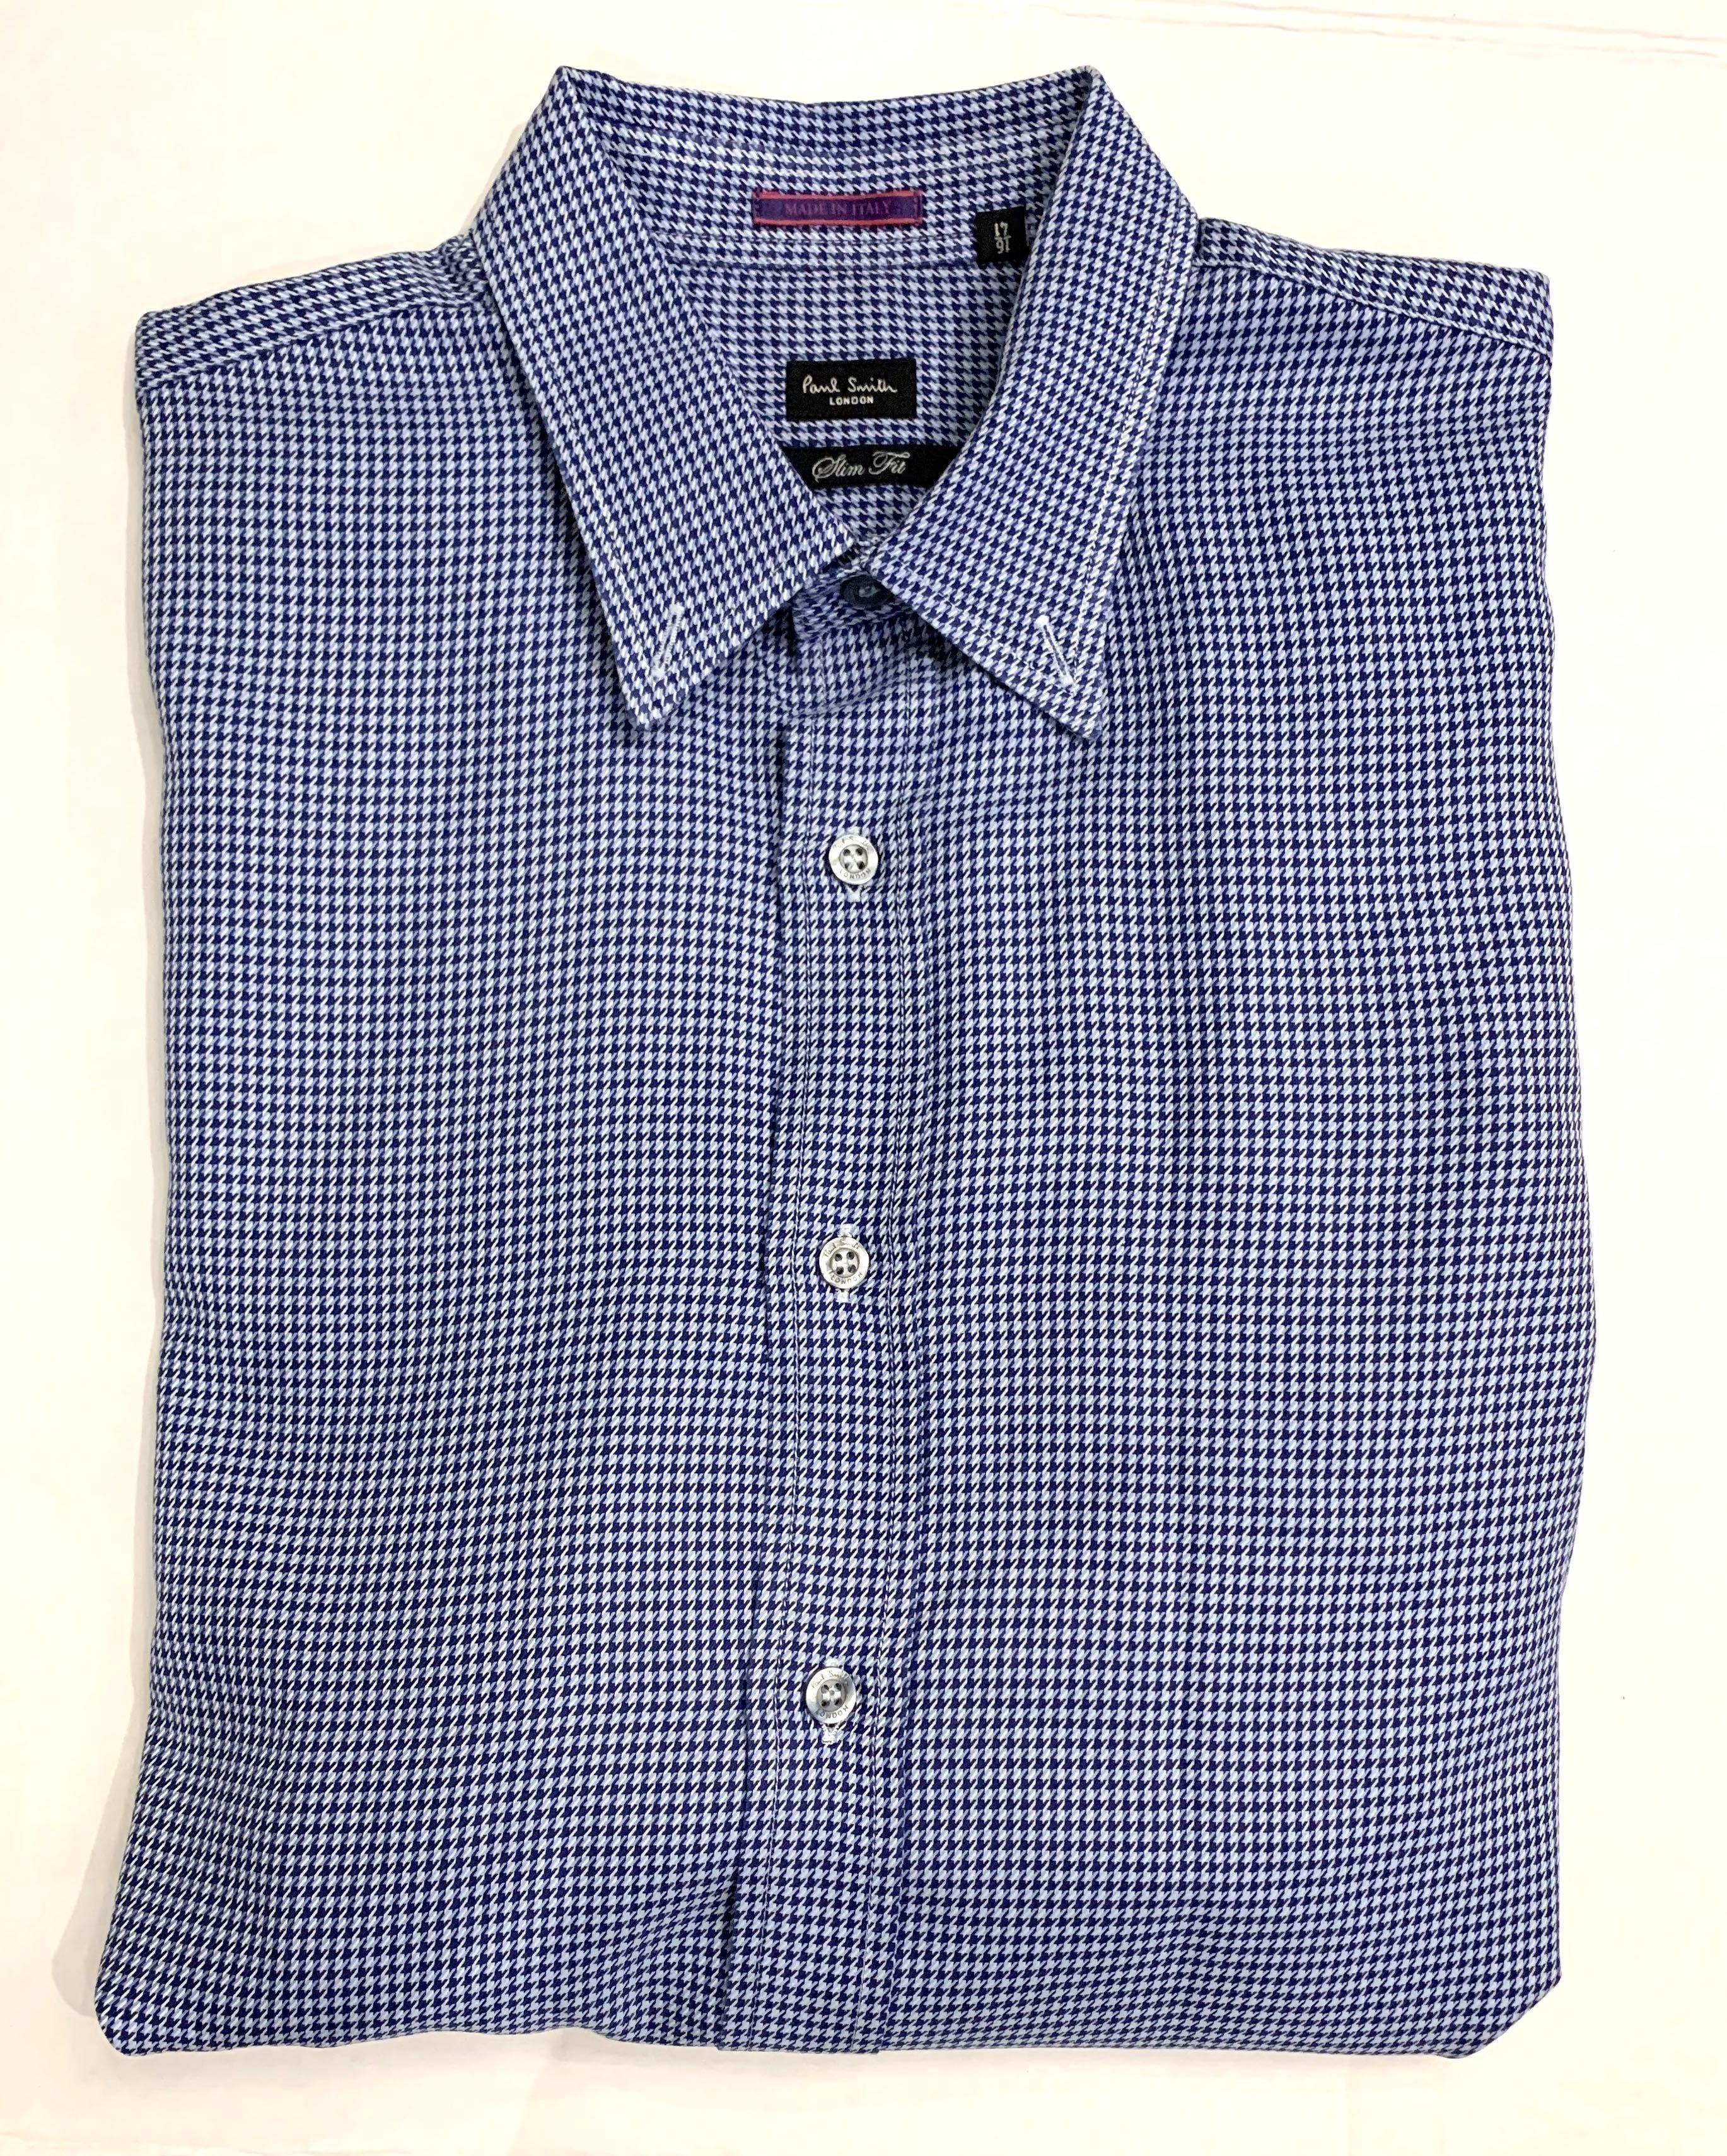 Paul Smith made in Italy men's shirt